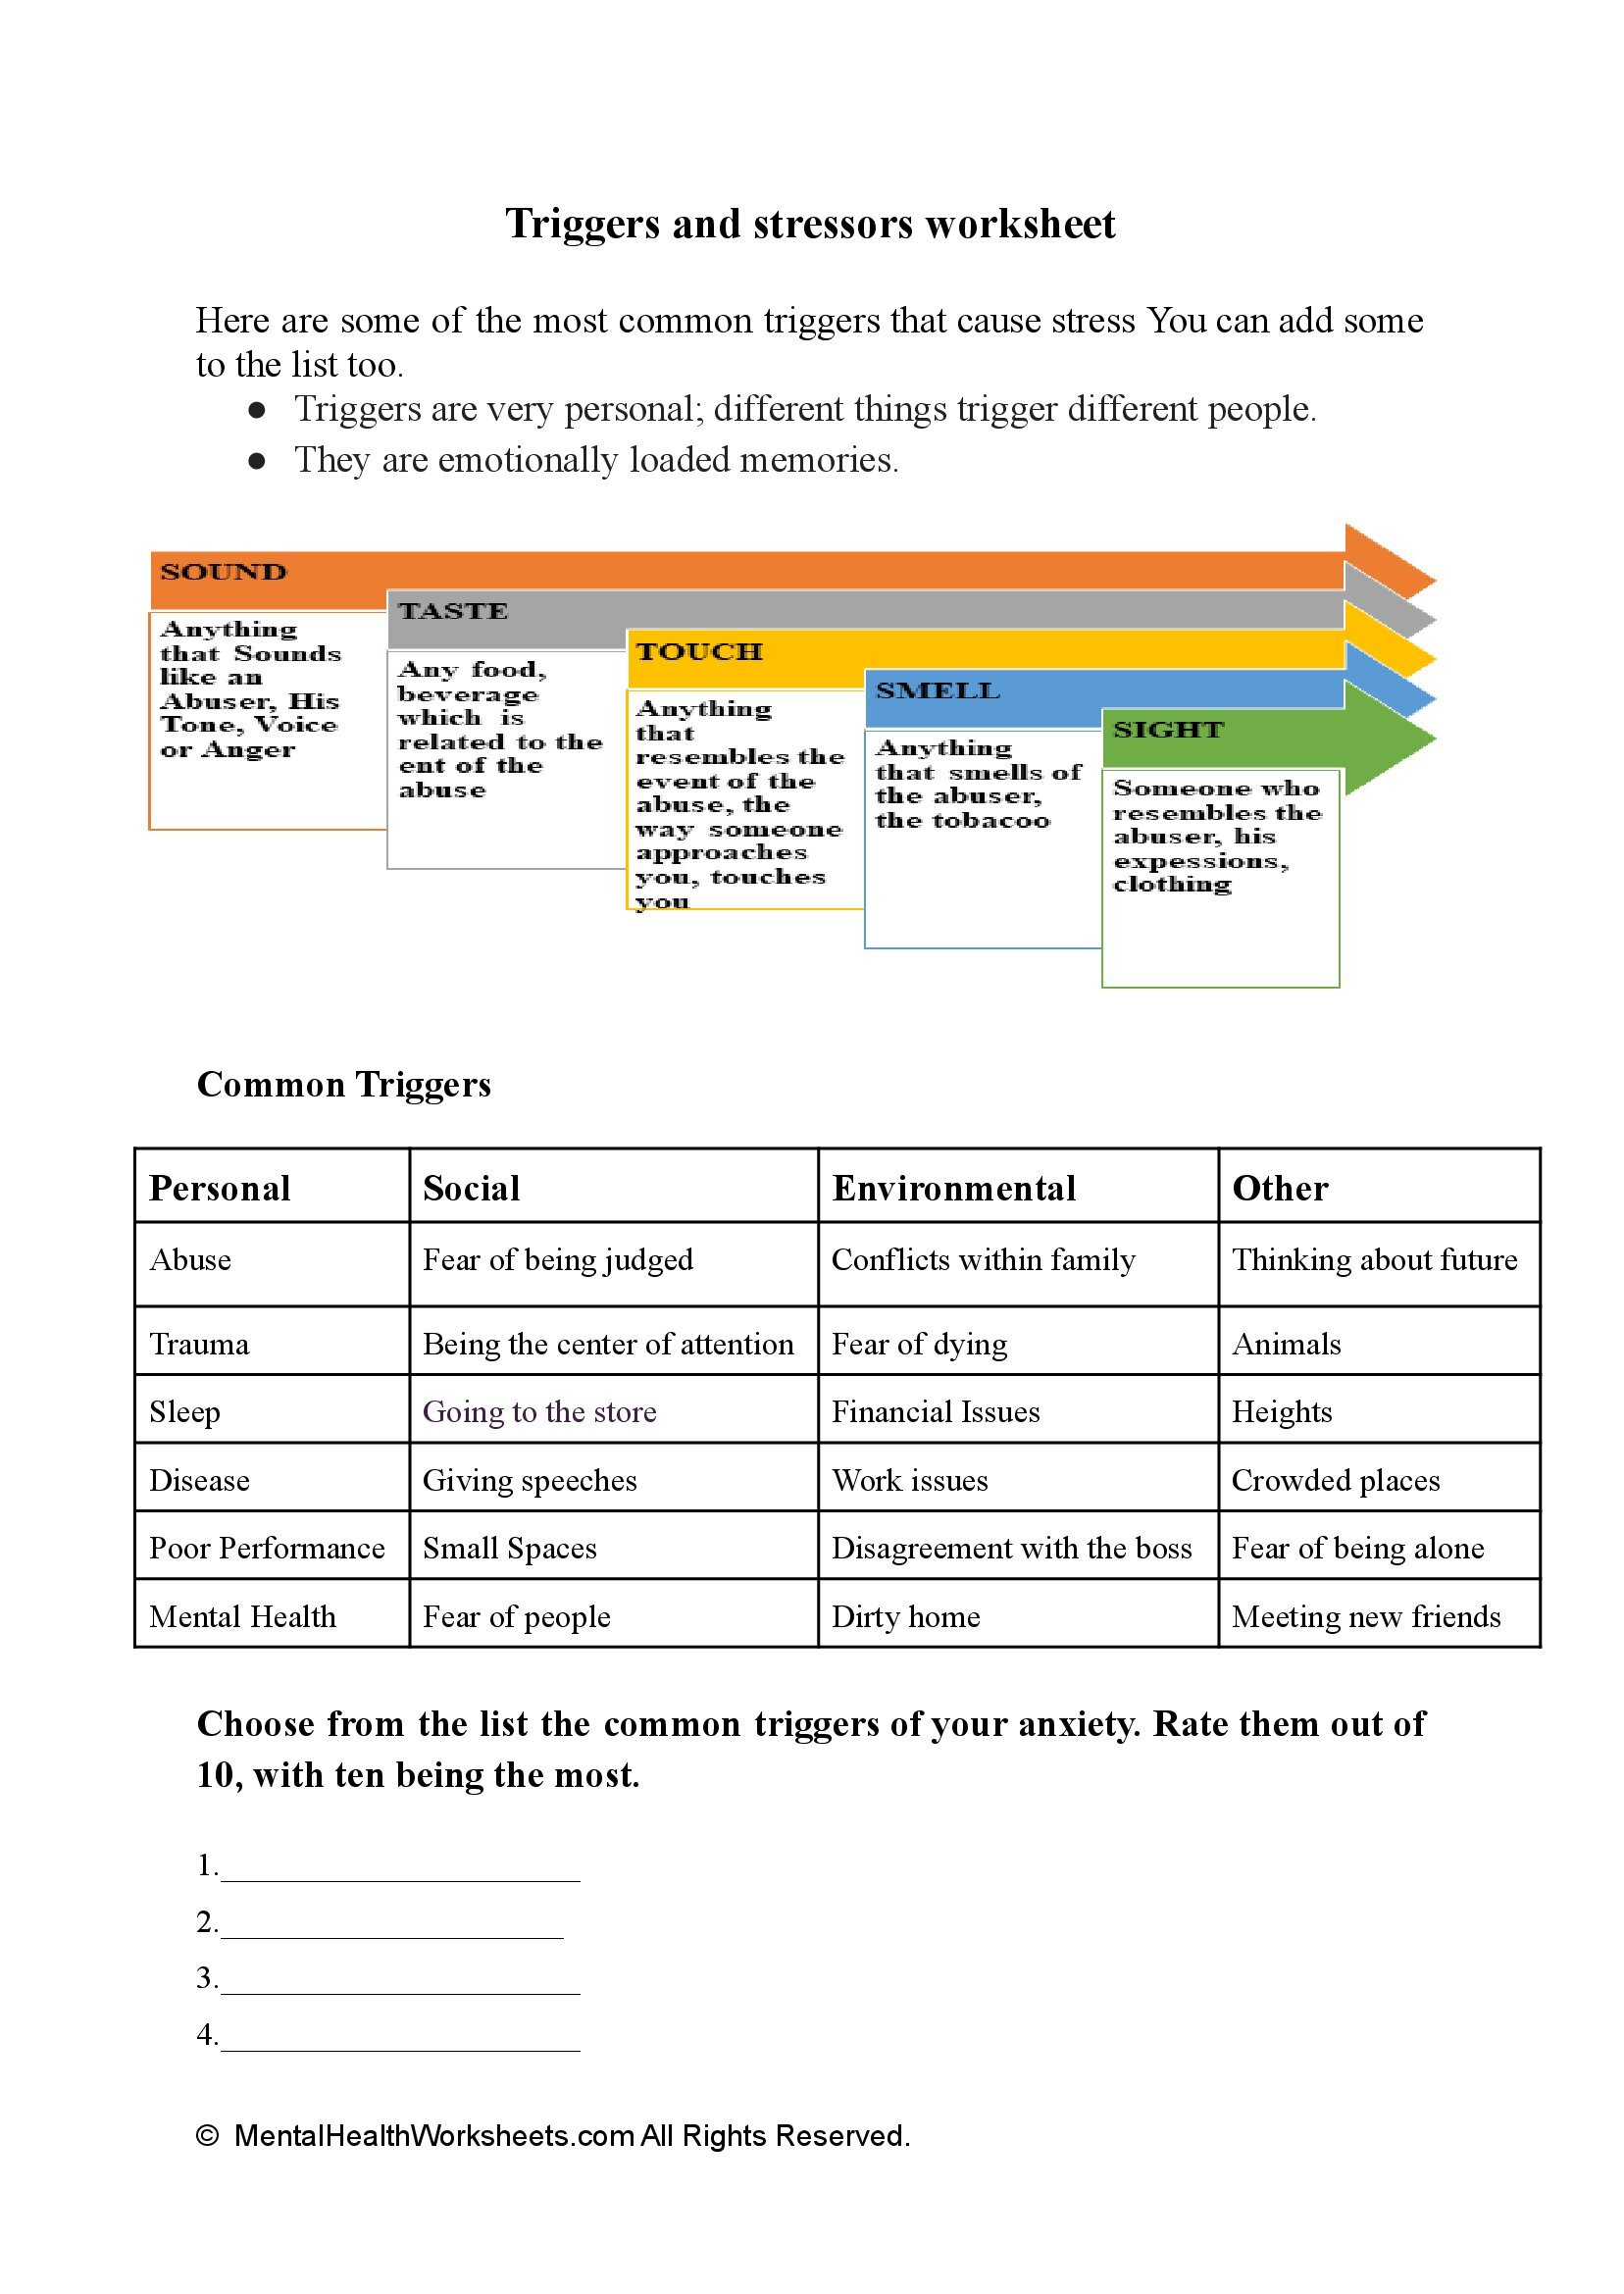 Triggers and stressors worksheet